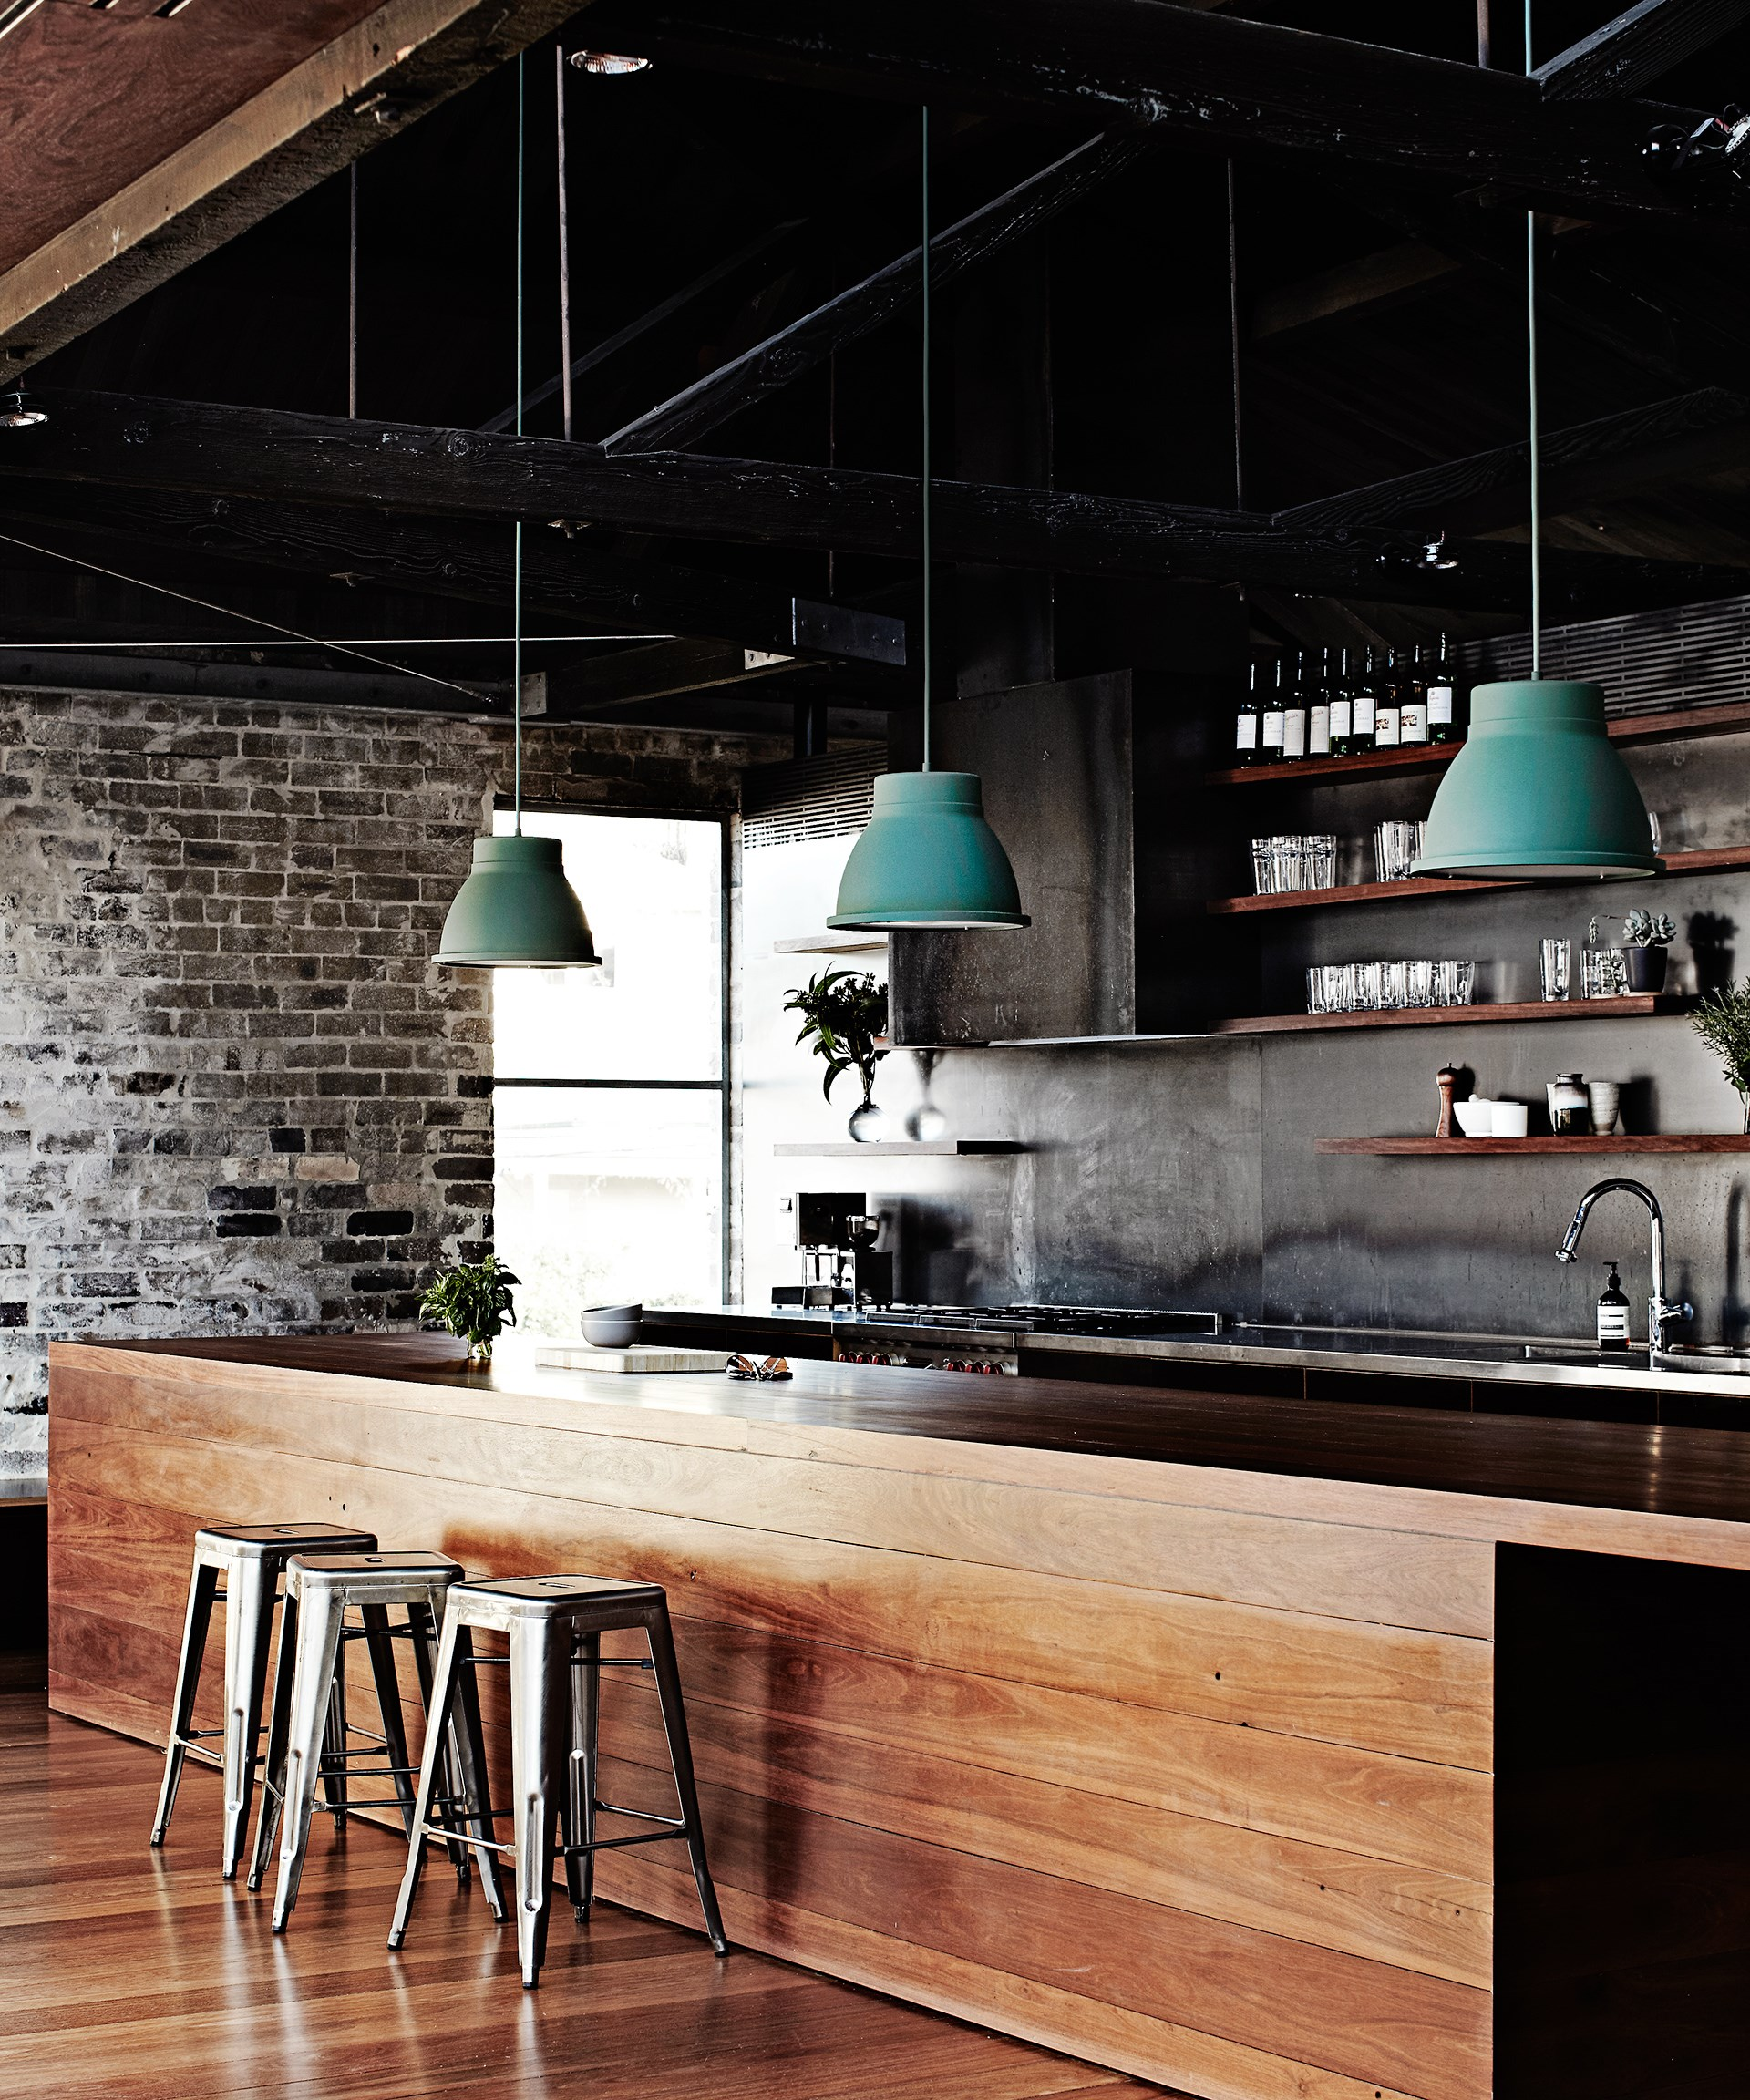 The show-stopping island bench in this [converted Melbourne warehouse](http://www.homestolove.com.au/inside-comedian-merrick-watts-happy-home-3465)  is made from reclaimed ironbark, with the timber also offering a warm contrast to the exposed brick of the original building. Statement pendant lamps finish off the industrial style.